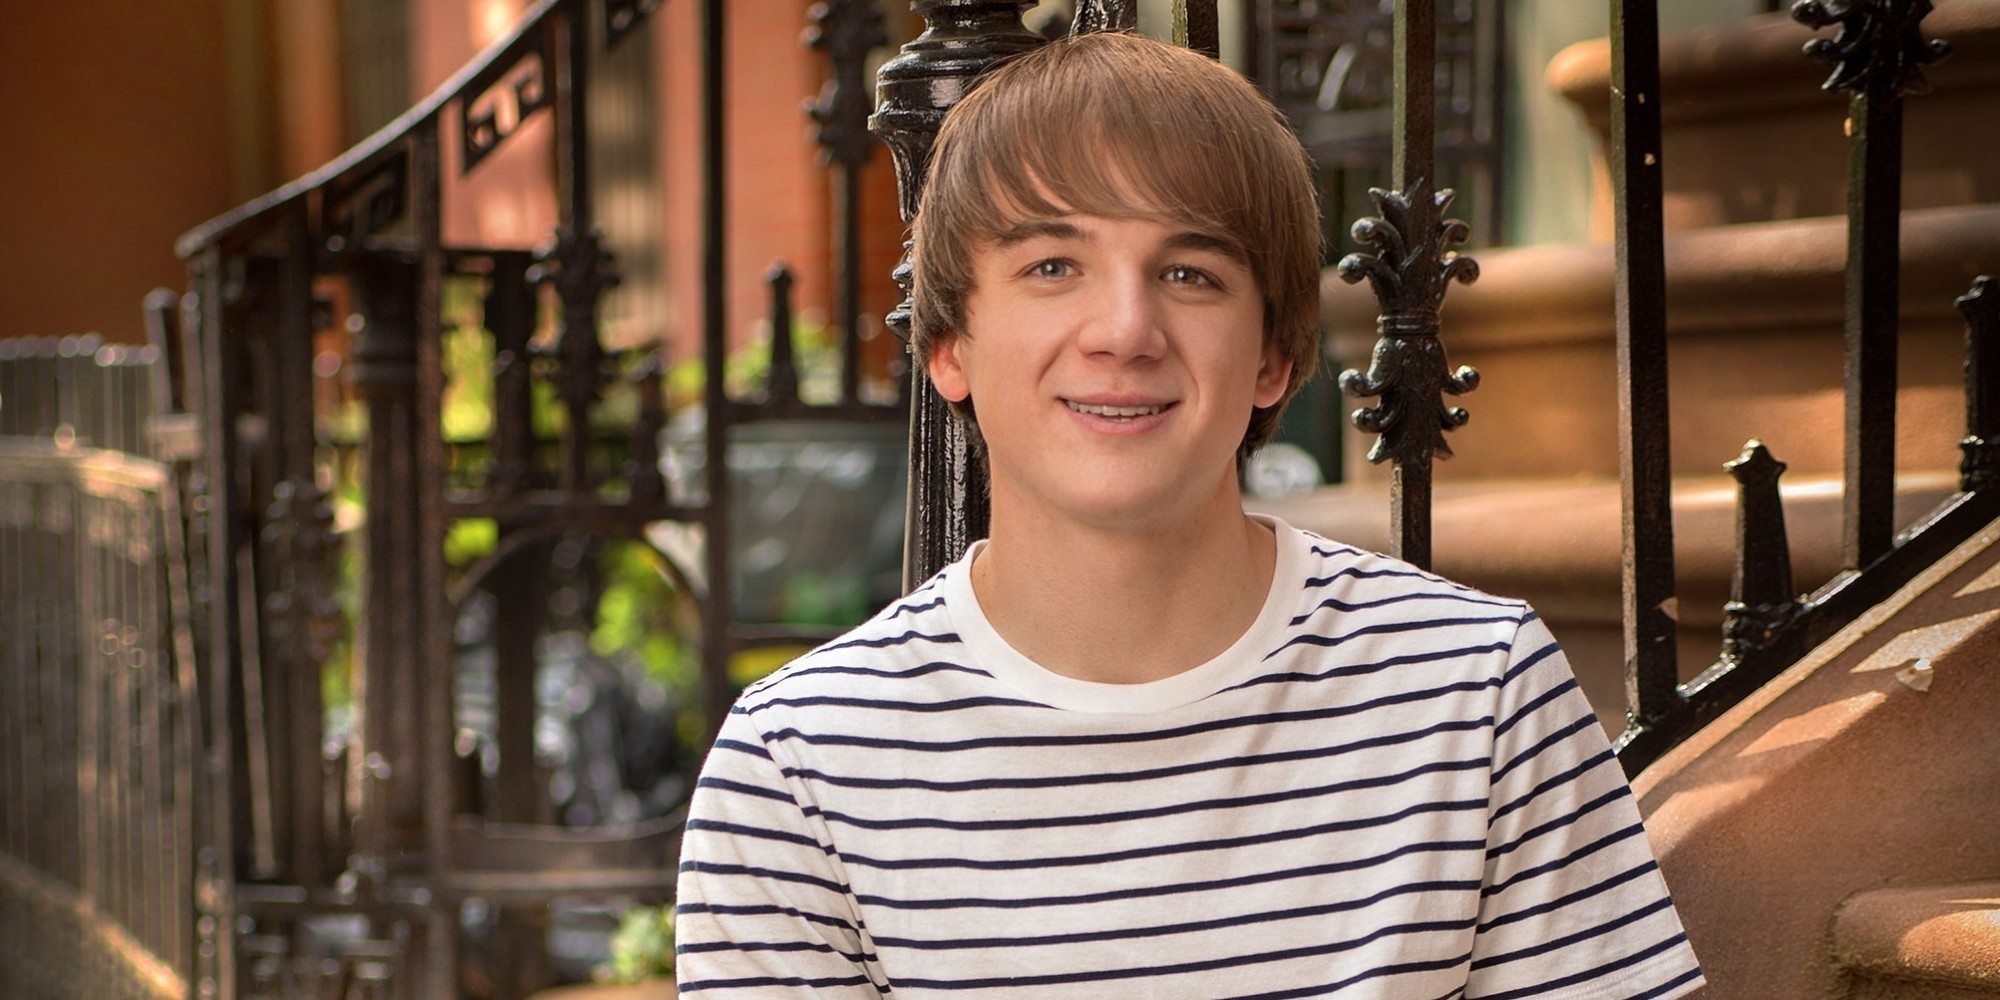 Jack Andraka Invented A Cancer Breakthrough. Now He's Building Nanobots. He's 18.